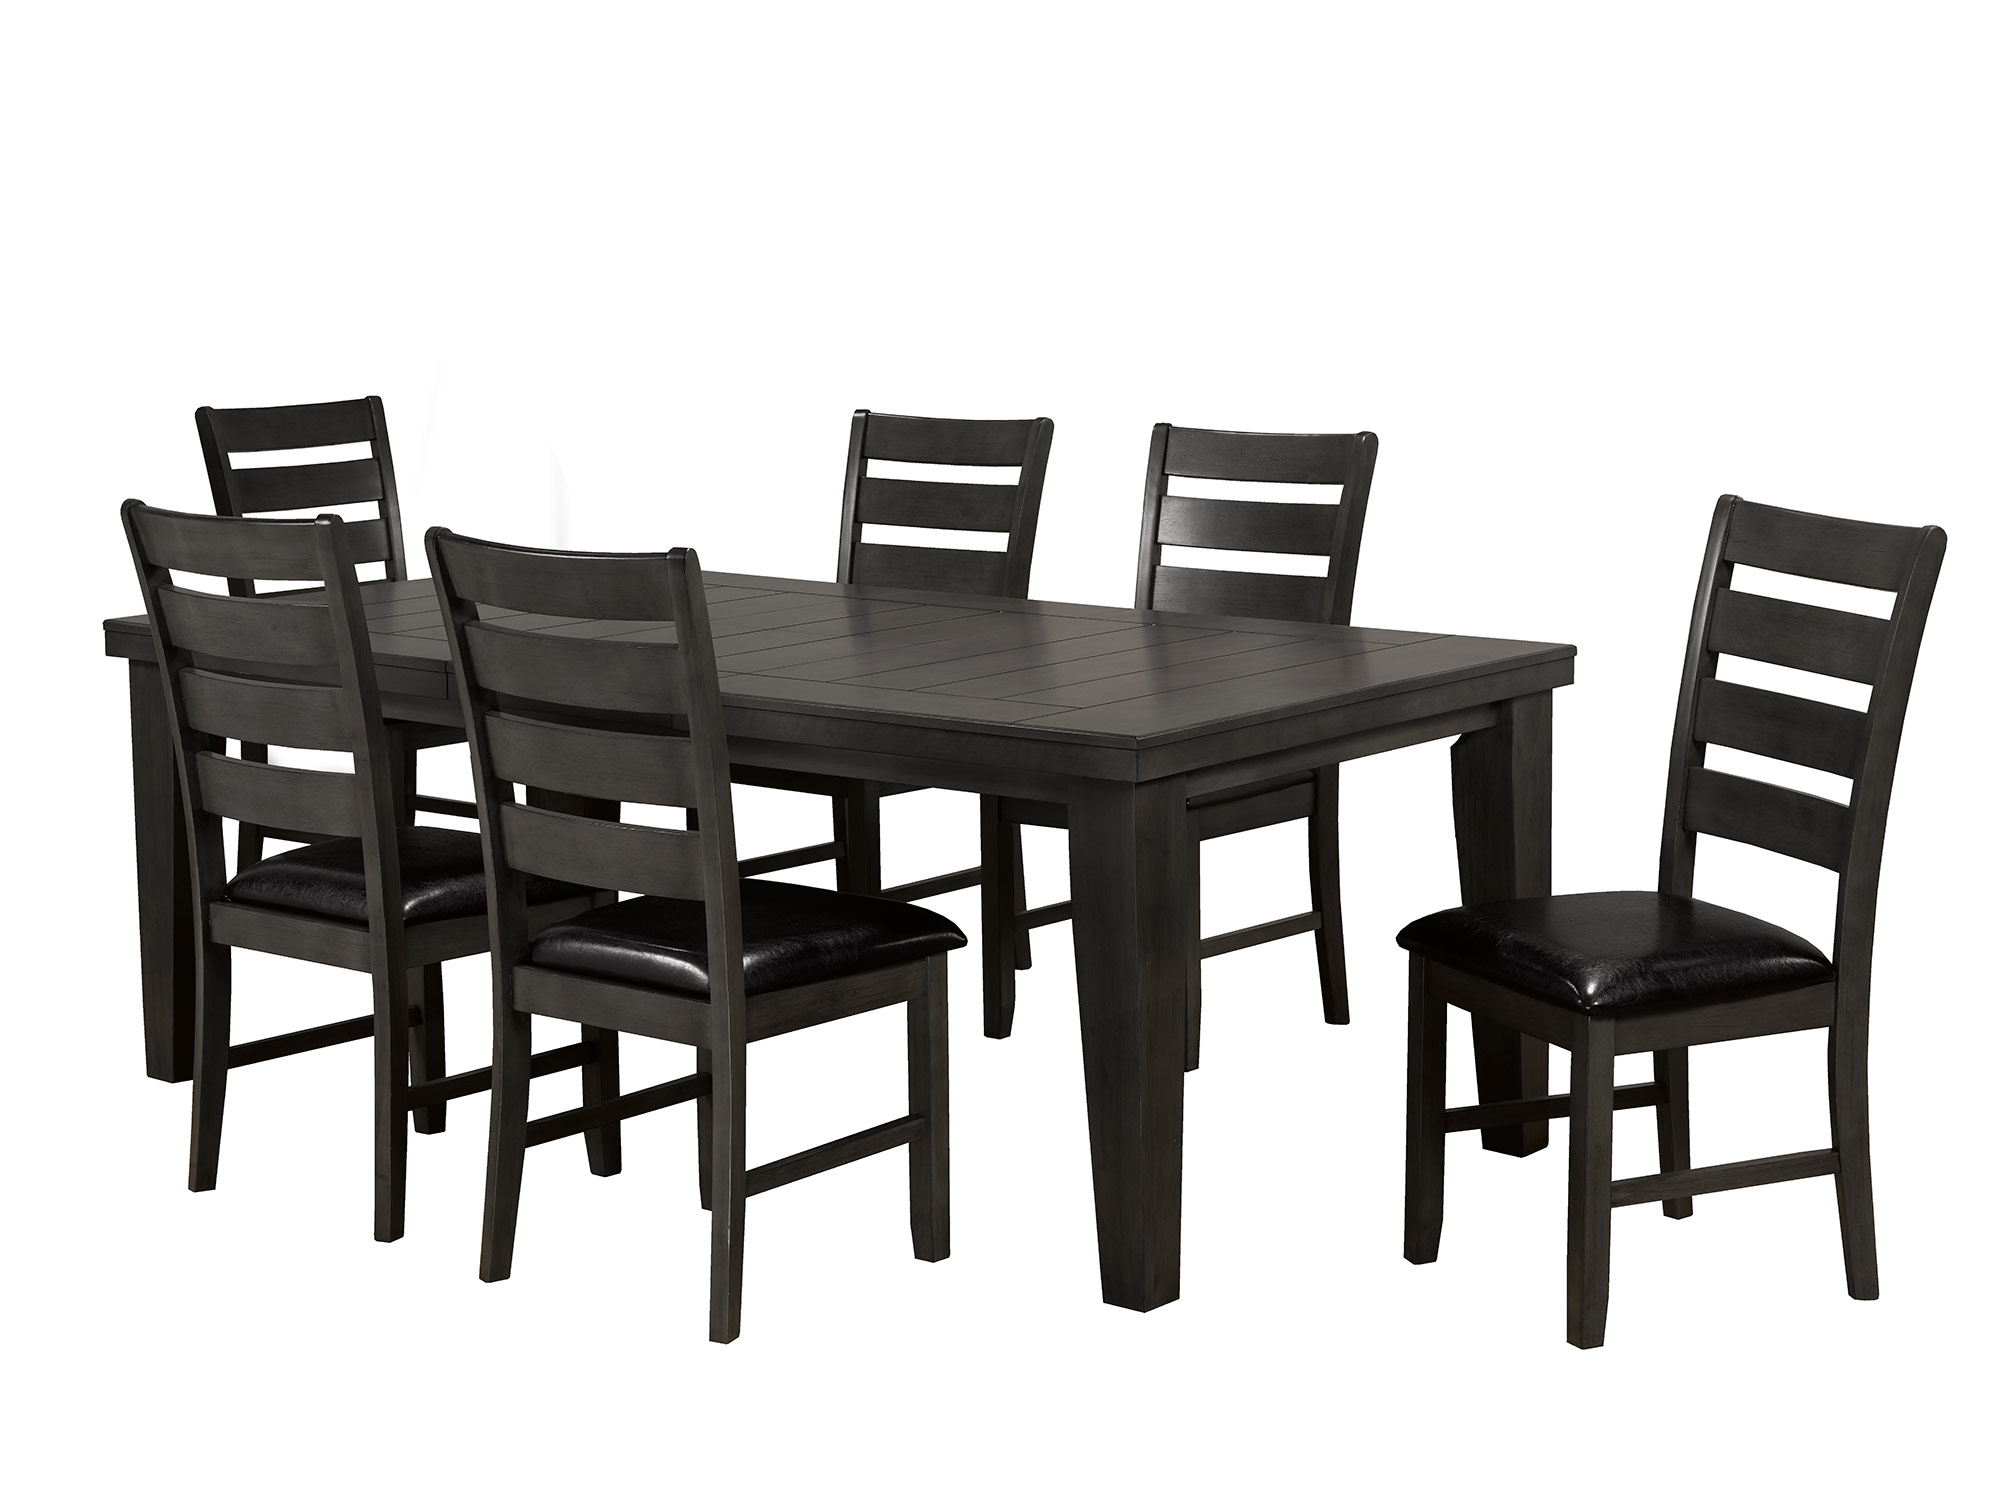 OAKLEY 7 PIECE DINING SET